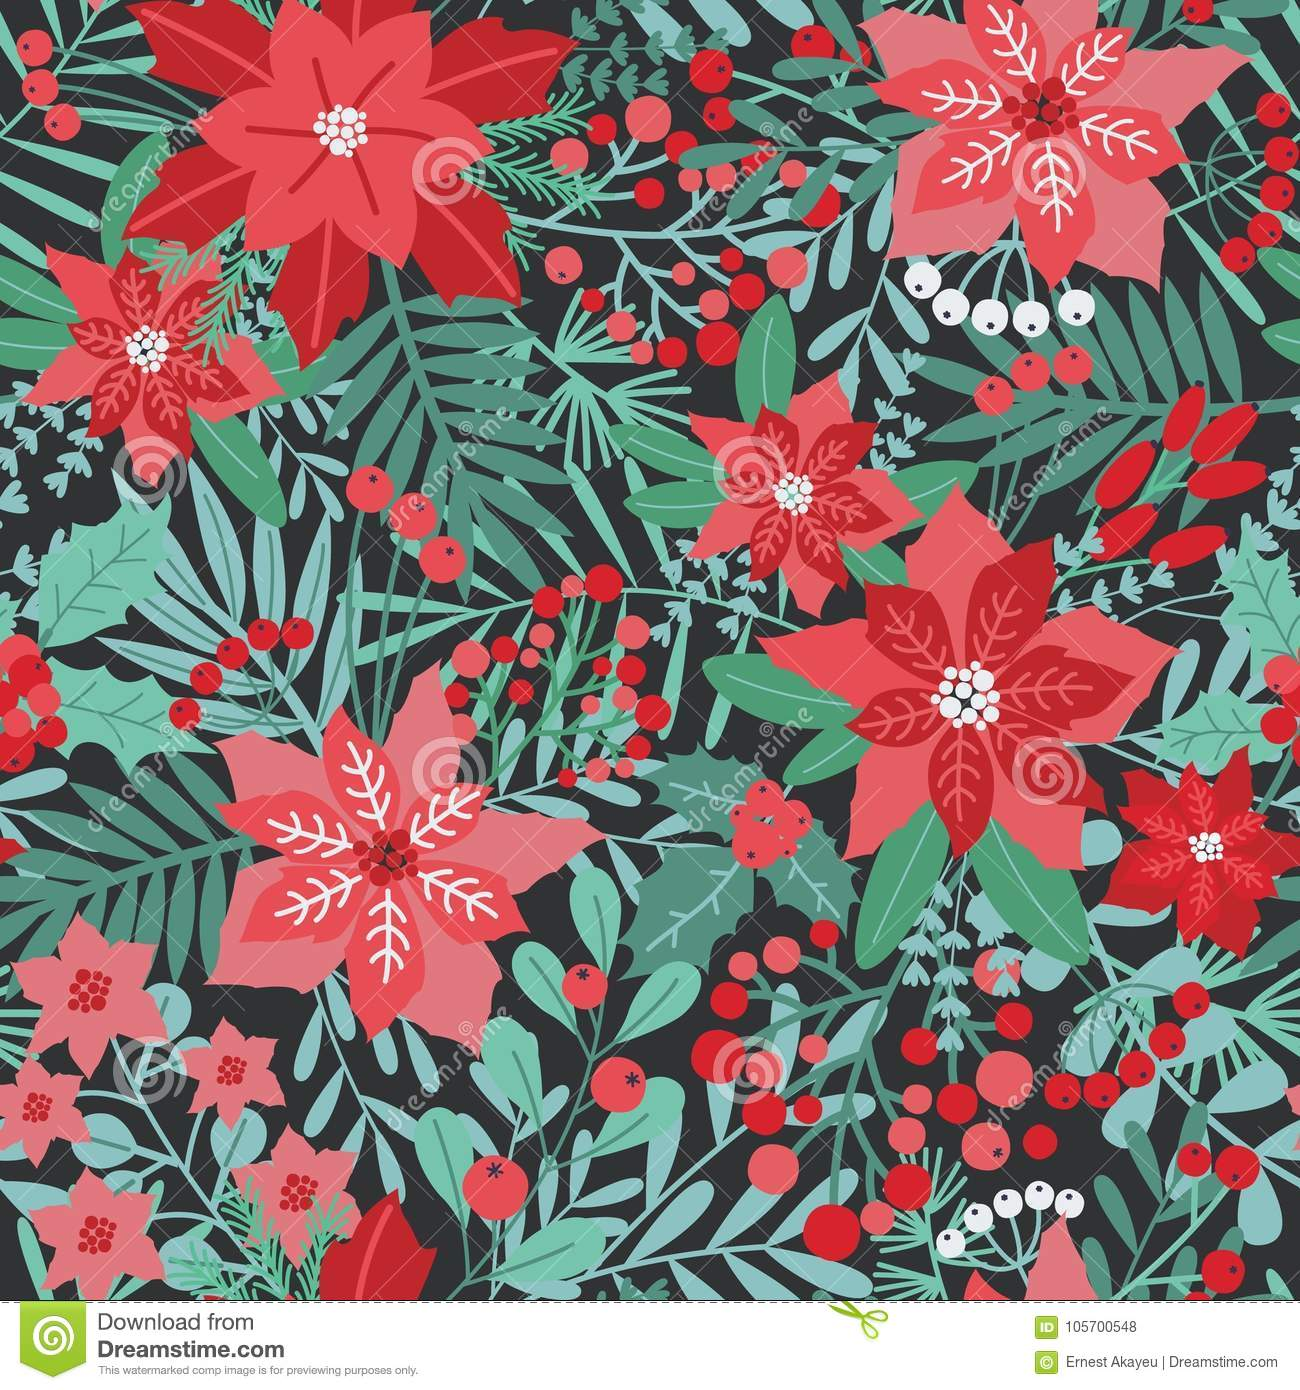 Elegant Christmas festive seamless pattern with green and red traditional holiday natural decorations on dark background